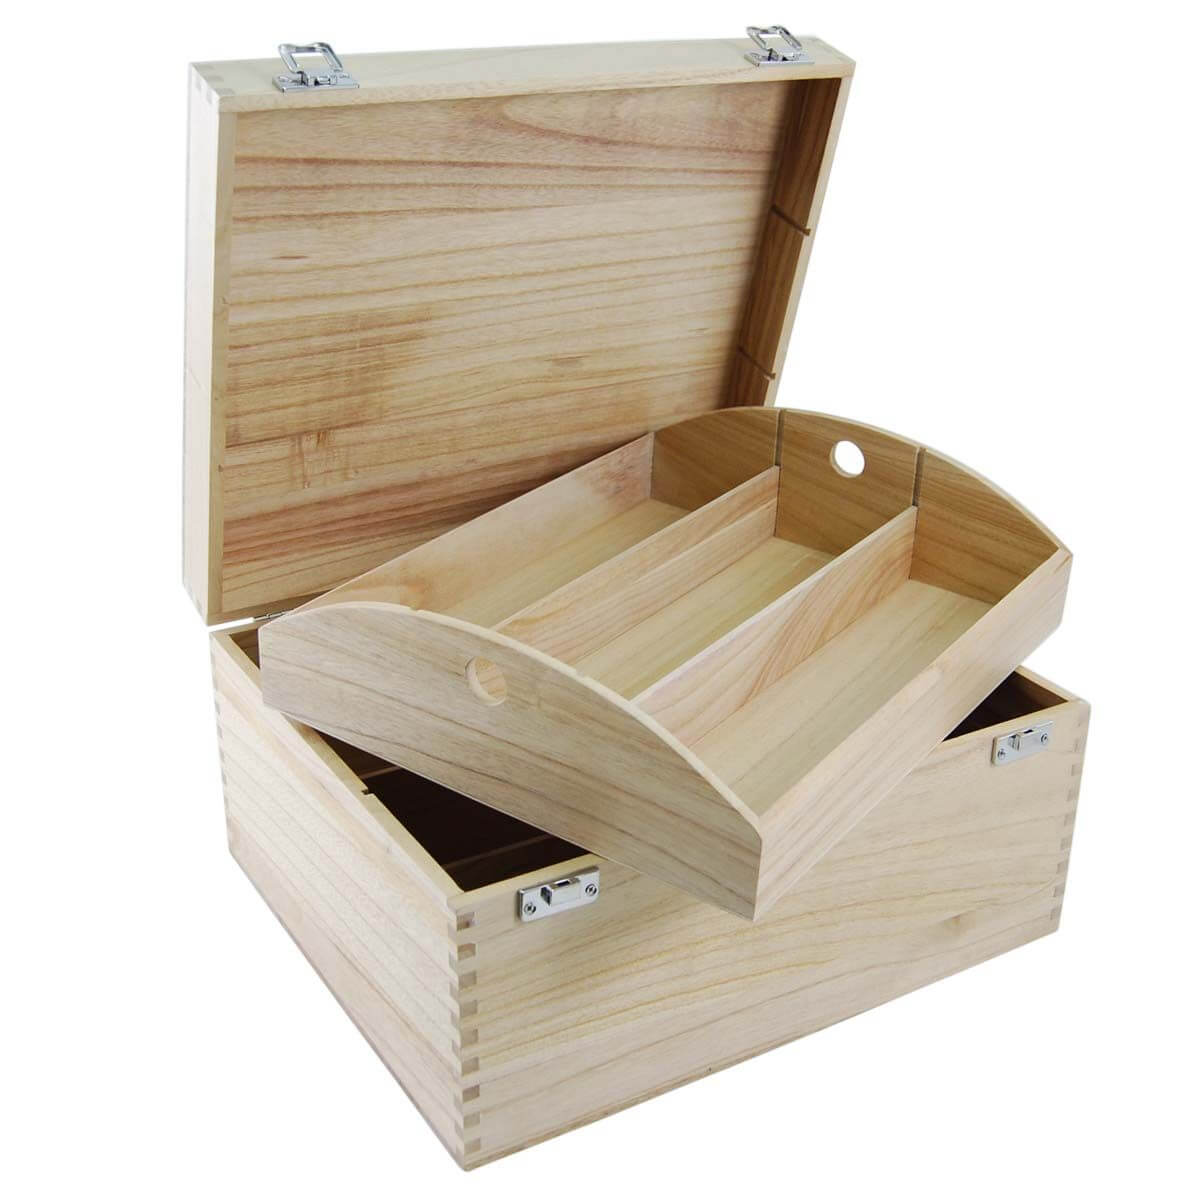 content/alcohol-hampers/6-bottle-hinged-wooden-luxury-tray_2.jpg